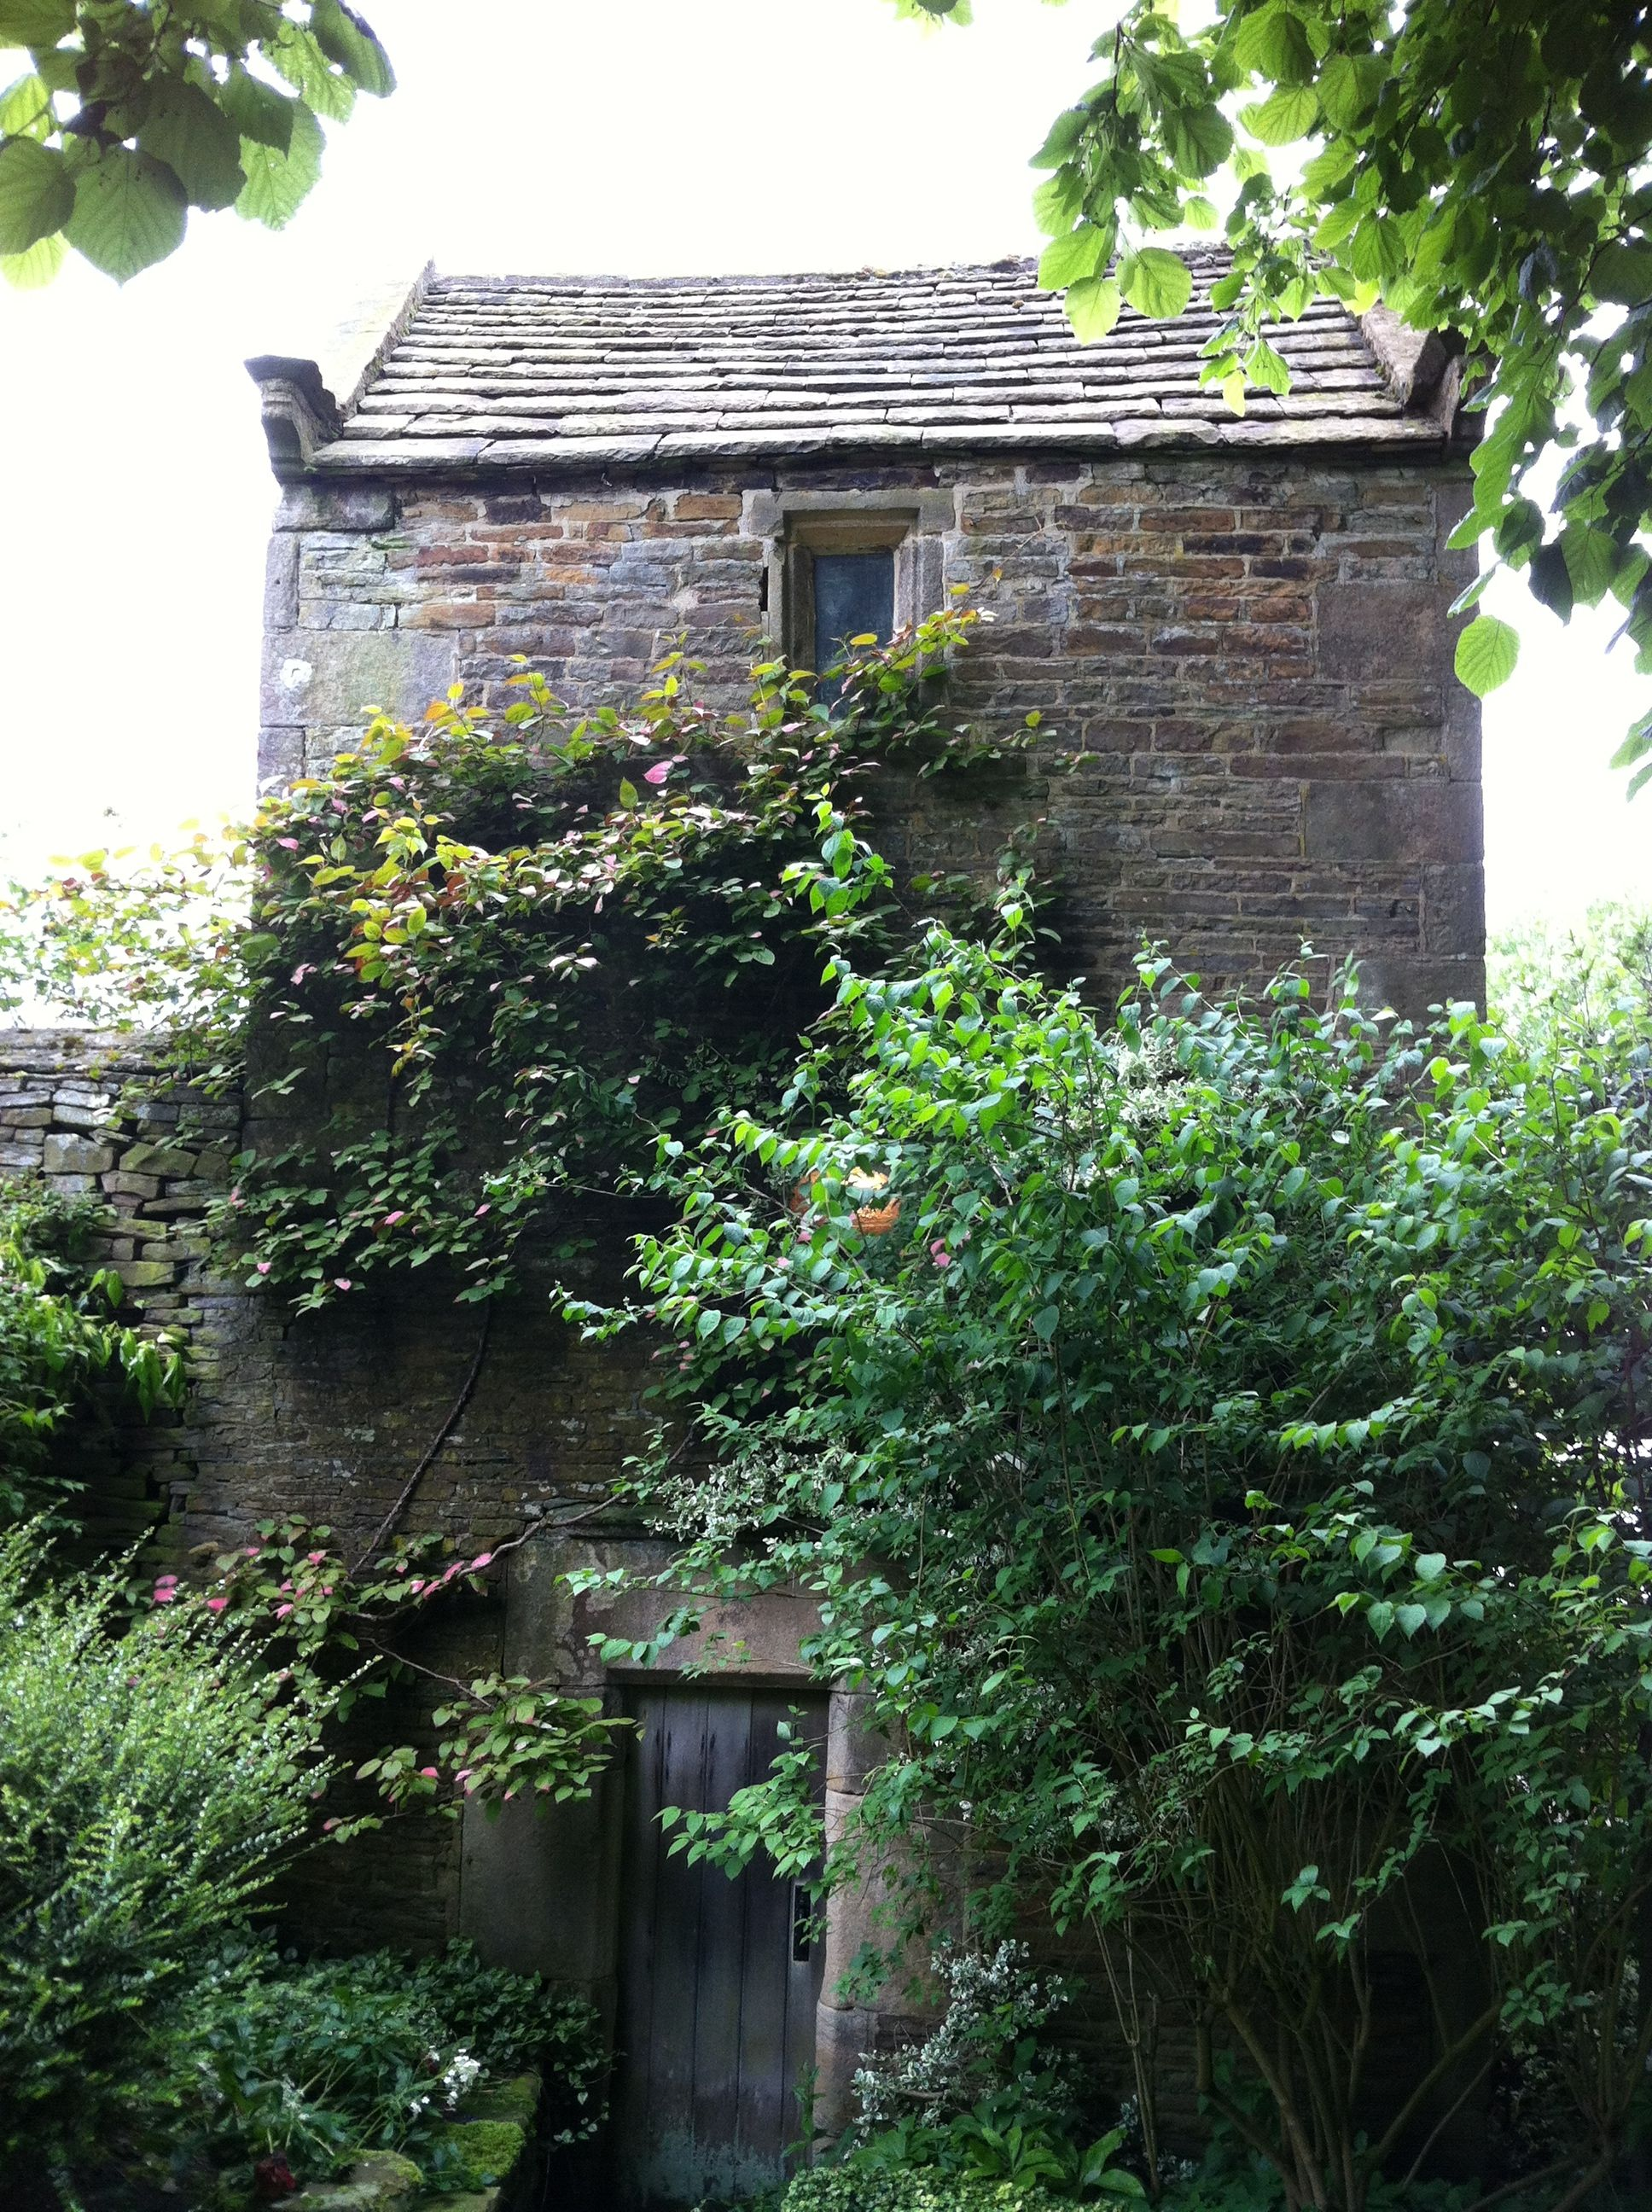 The dovecote at Fanshawe Gate Hall, Holmesfield, Derbyshire; 24 June 2012 for @NGSOpenGardens